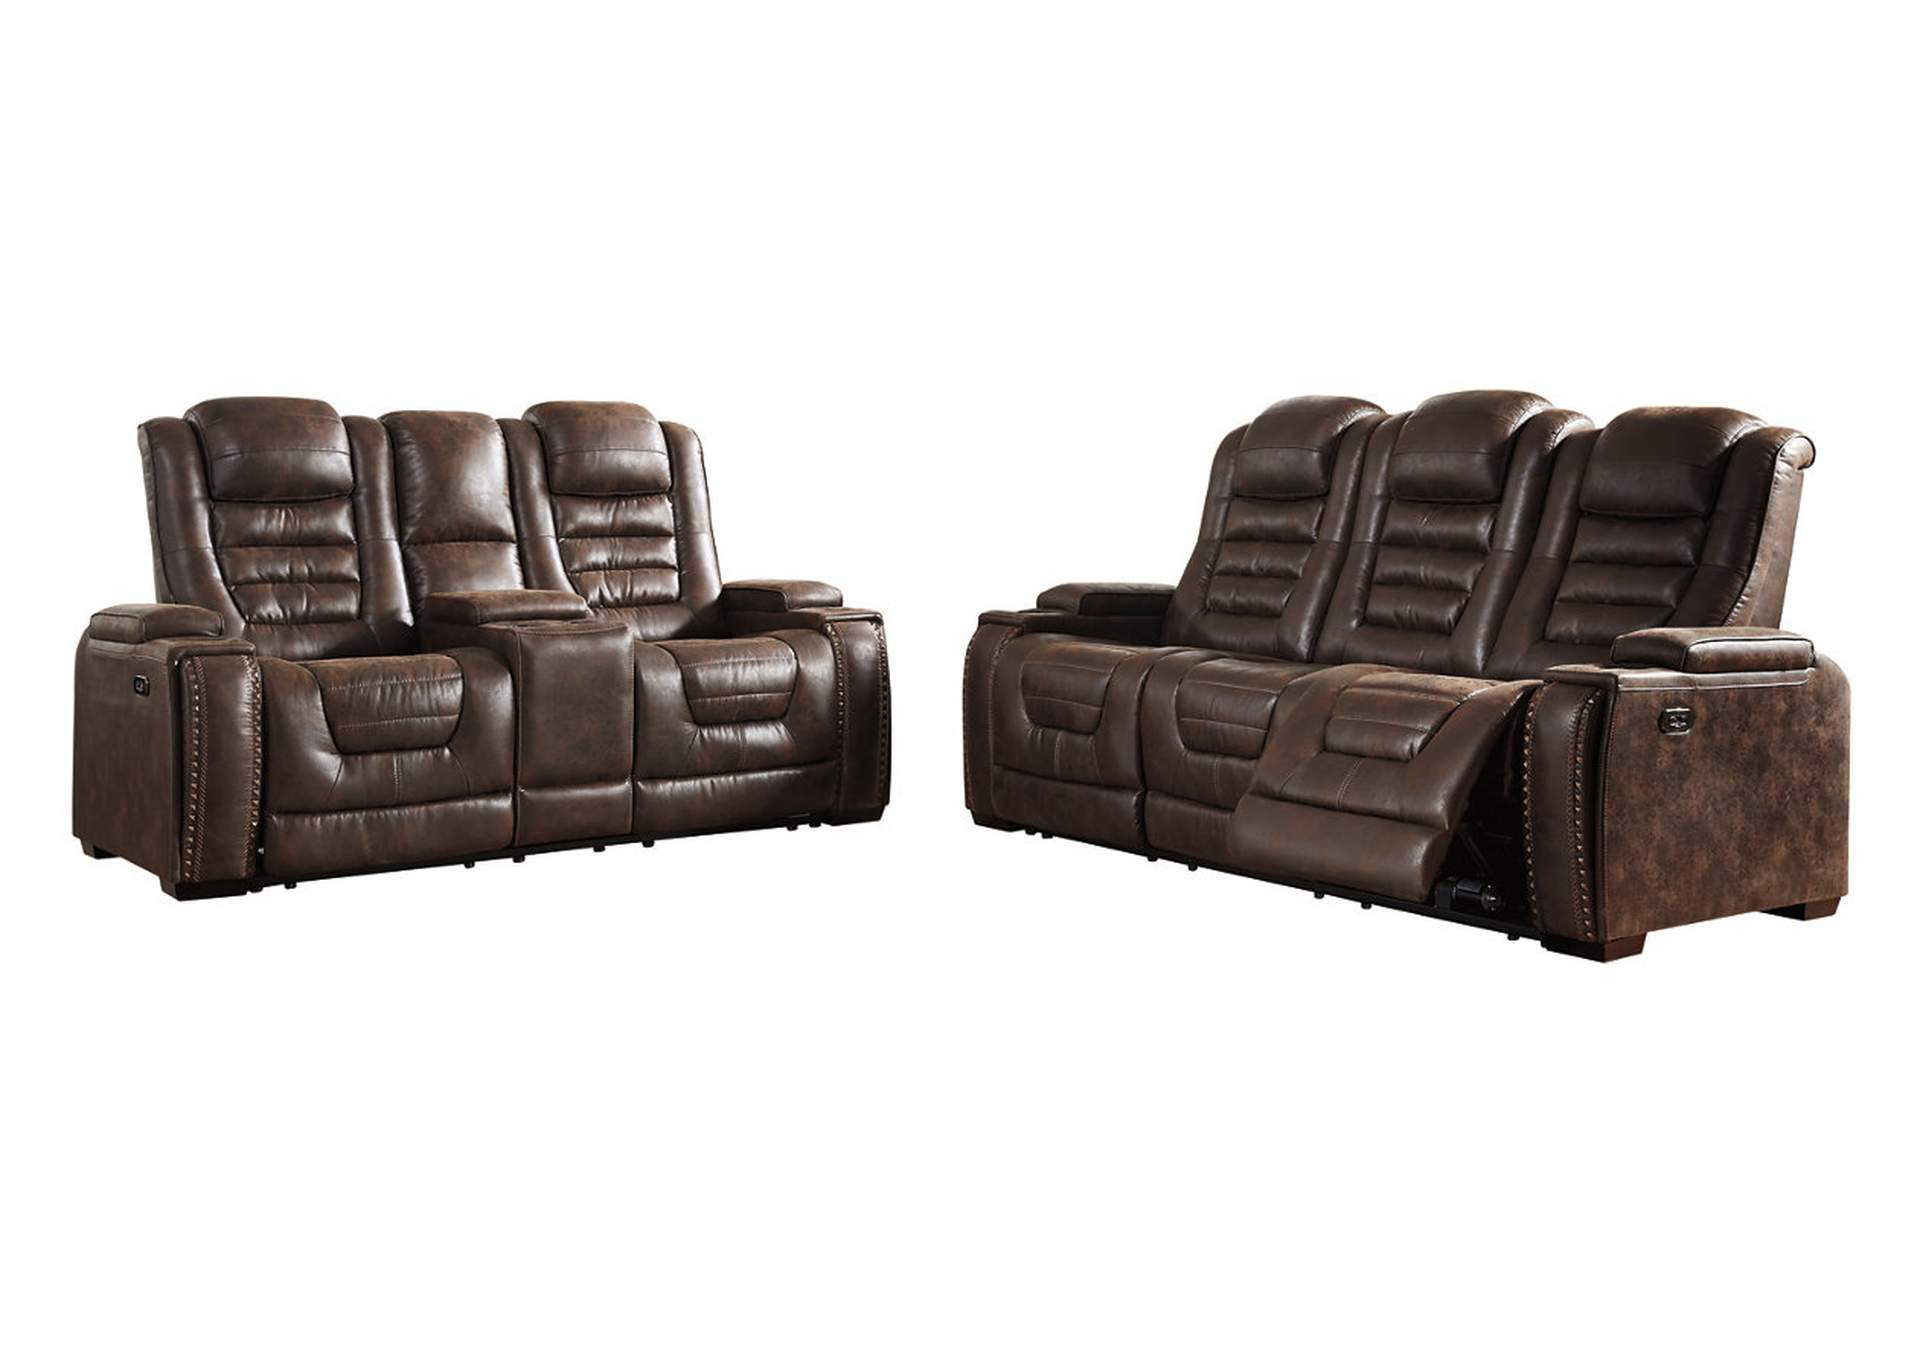 Home Zone Sofa Home Furnishings Depot Ny Game Zone Power Reclining Sofa